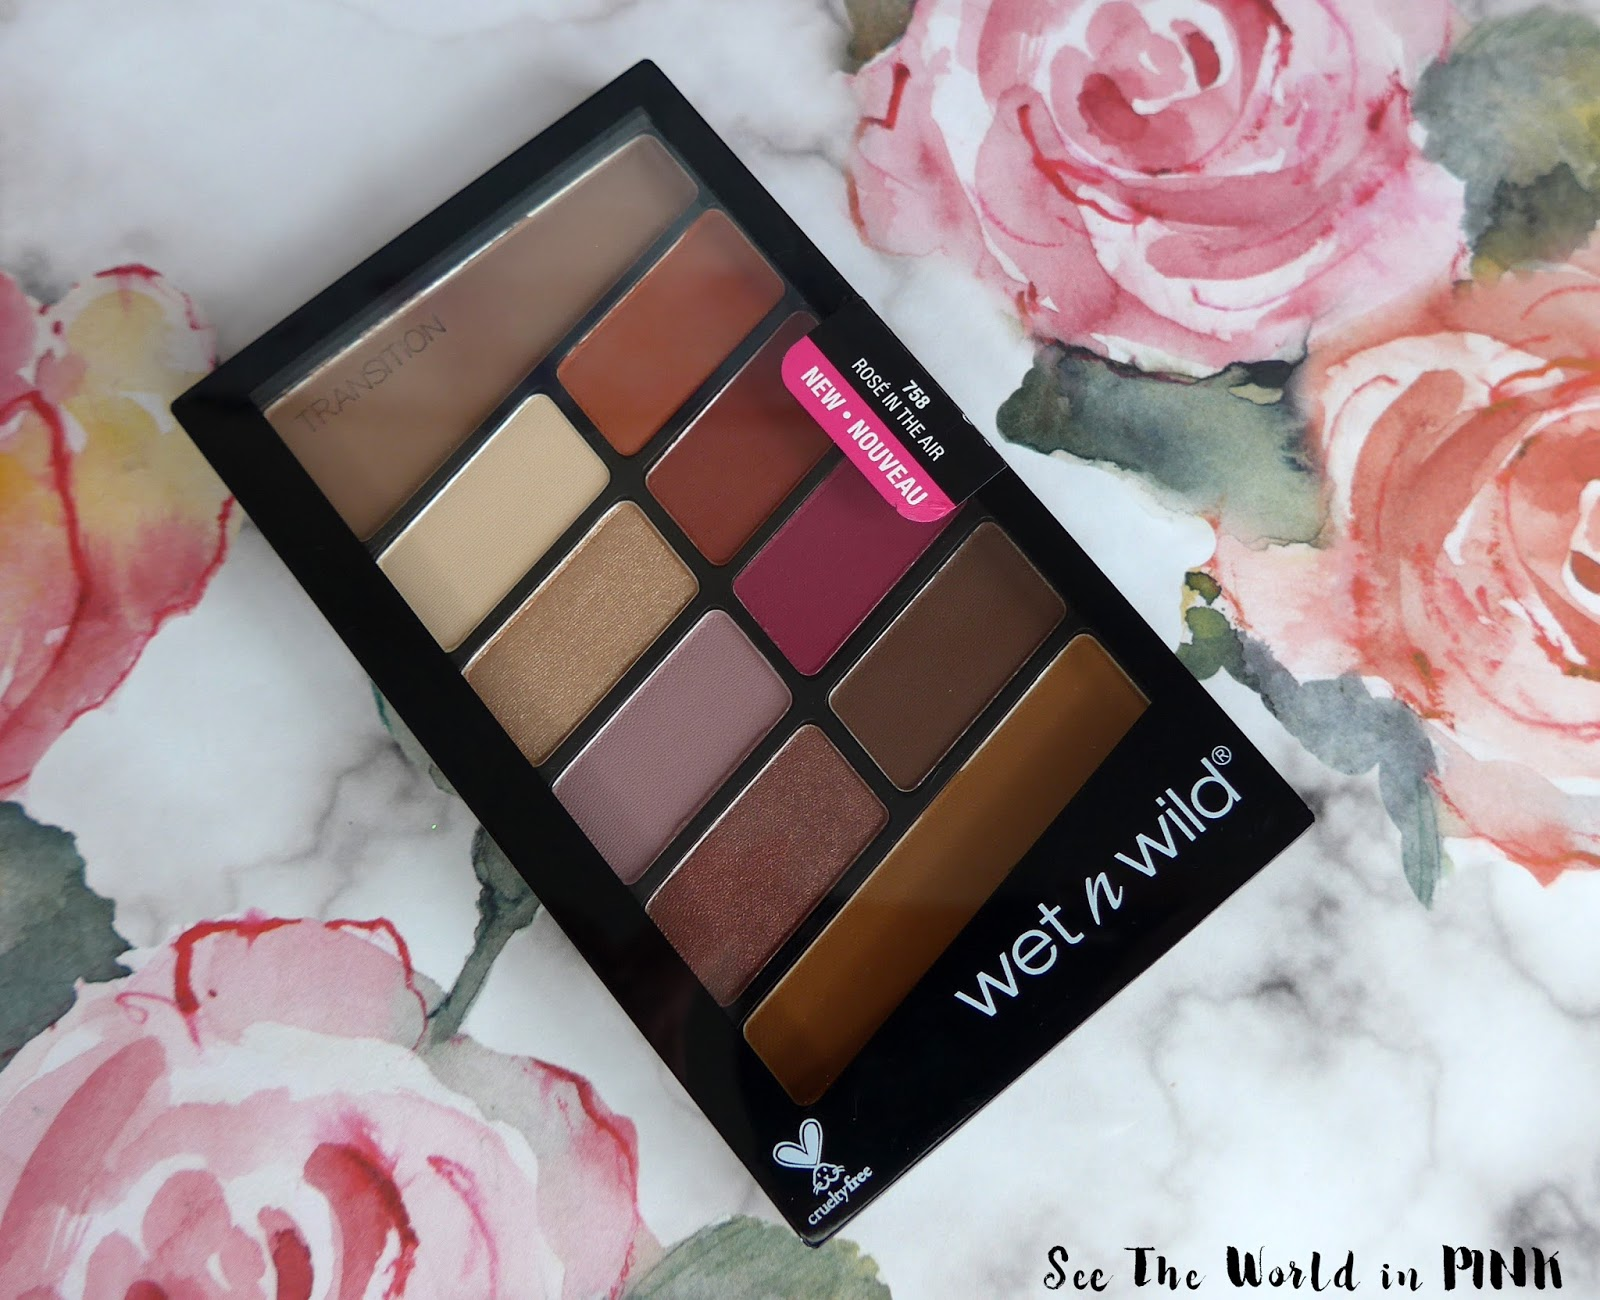 Wet n Wild Rose in the Air Color Icon Eyeshadow 10 Pan Palette - Swatches, Makeup Look and Review!